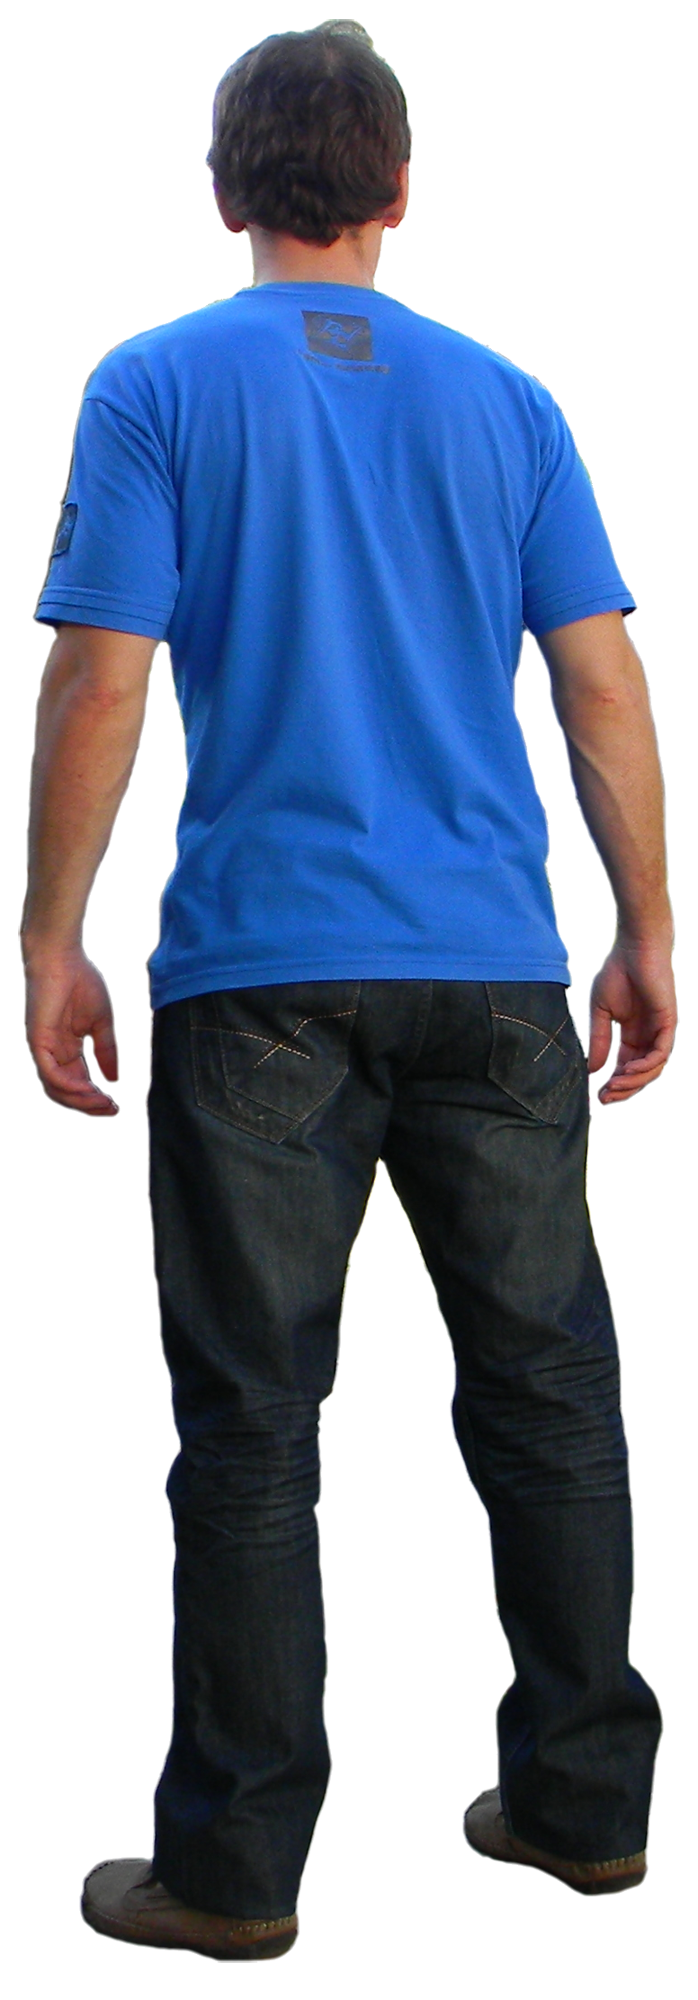 Guy clipart selfy. Man png images free